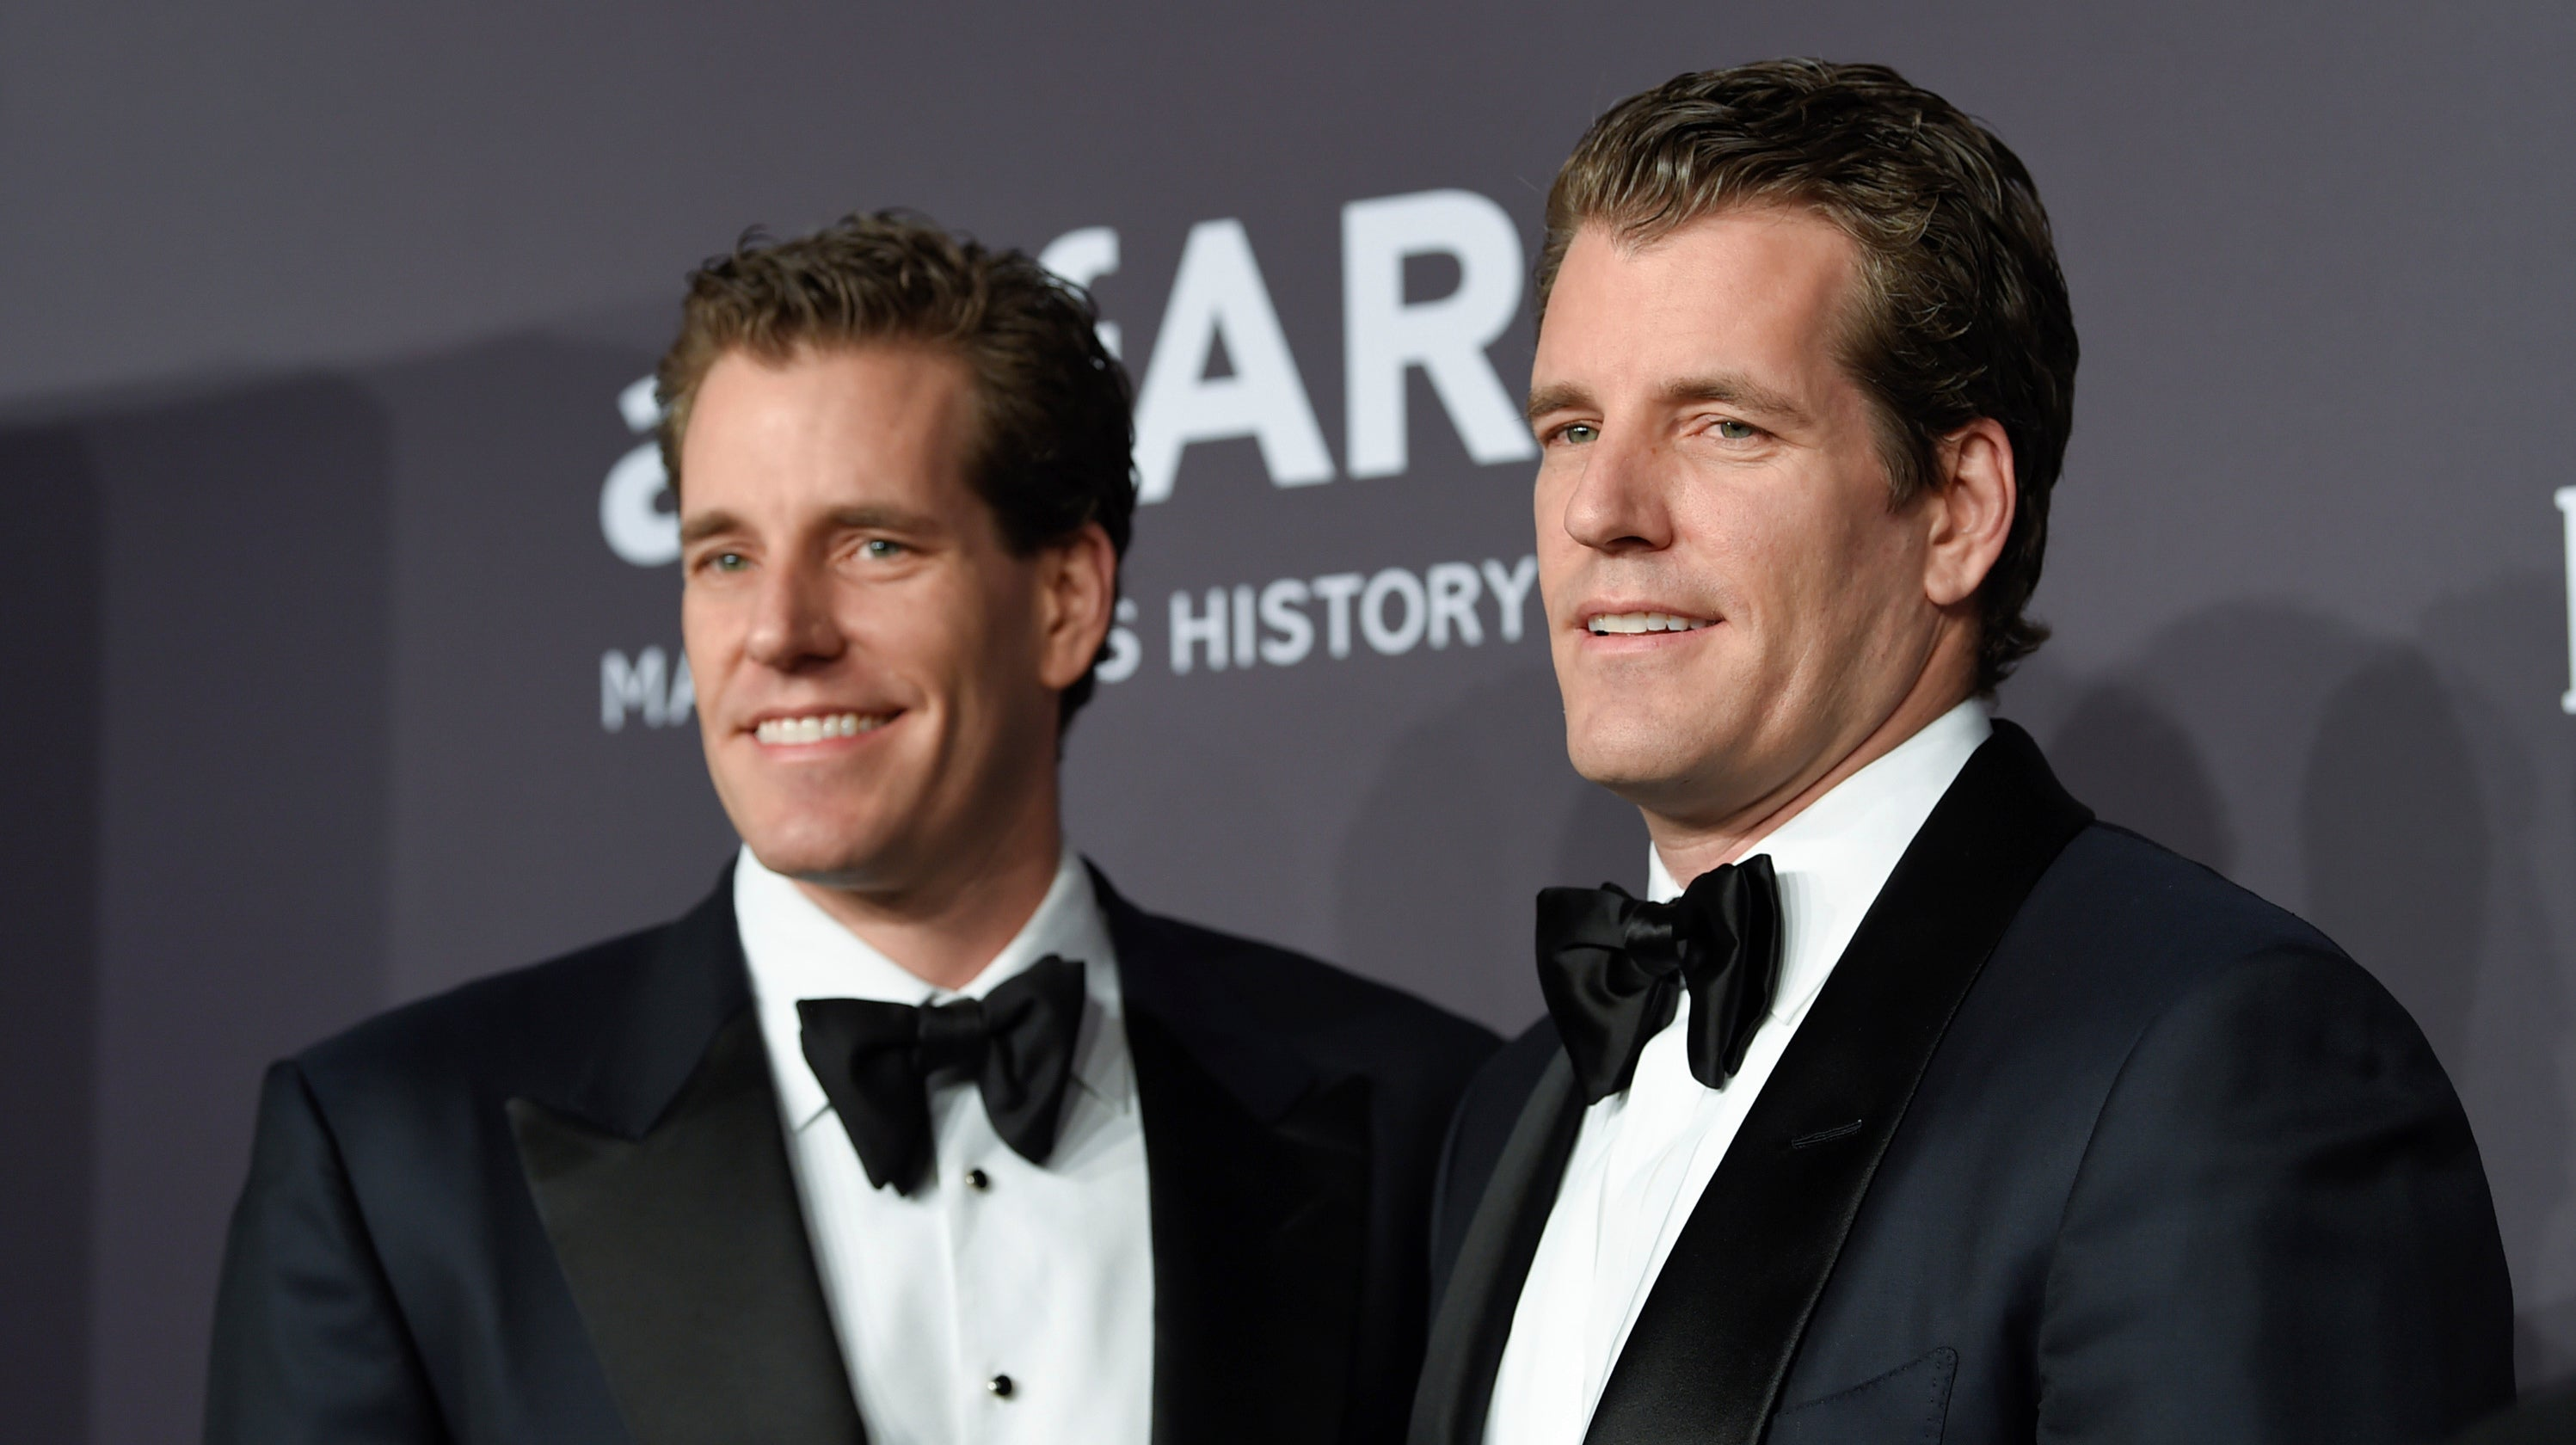 The Winklevoss Twins Want $32 Million In Allegedly Stolen Bitcoins Back